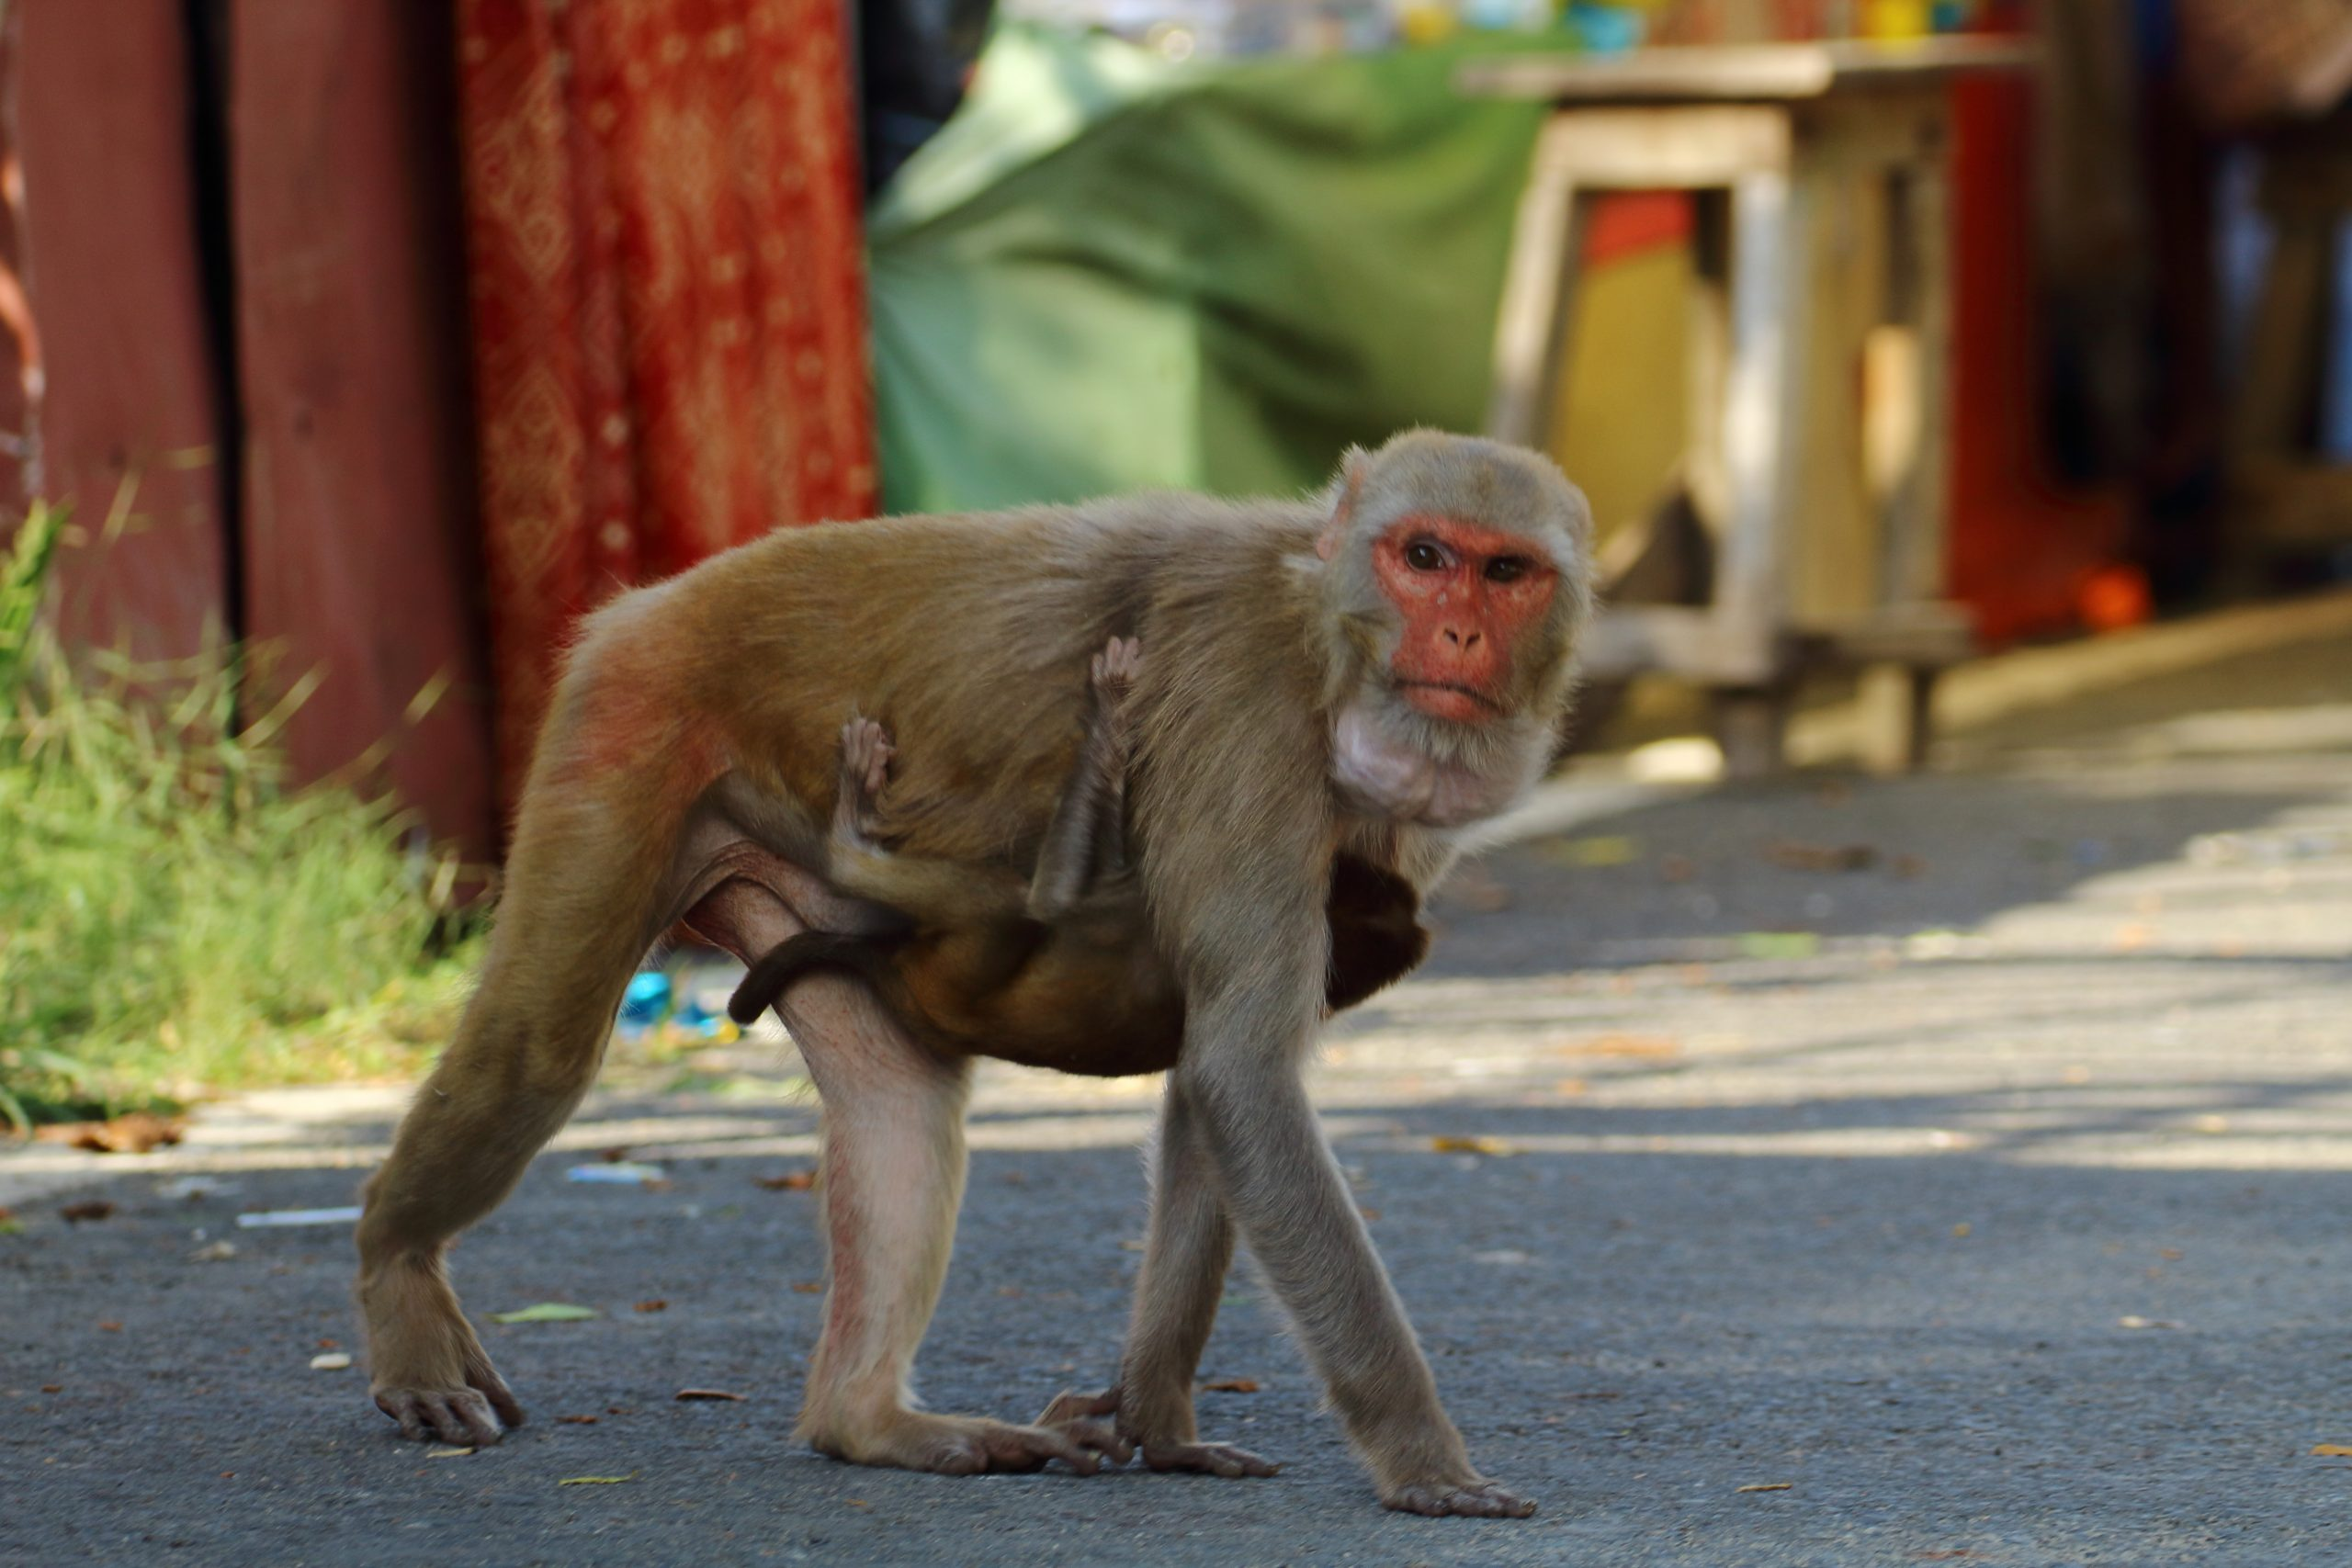 A female monkey carrying her baby